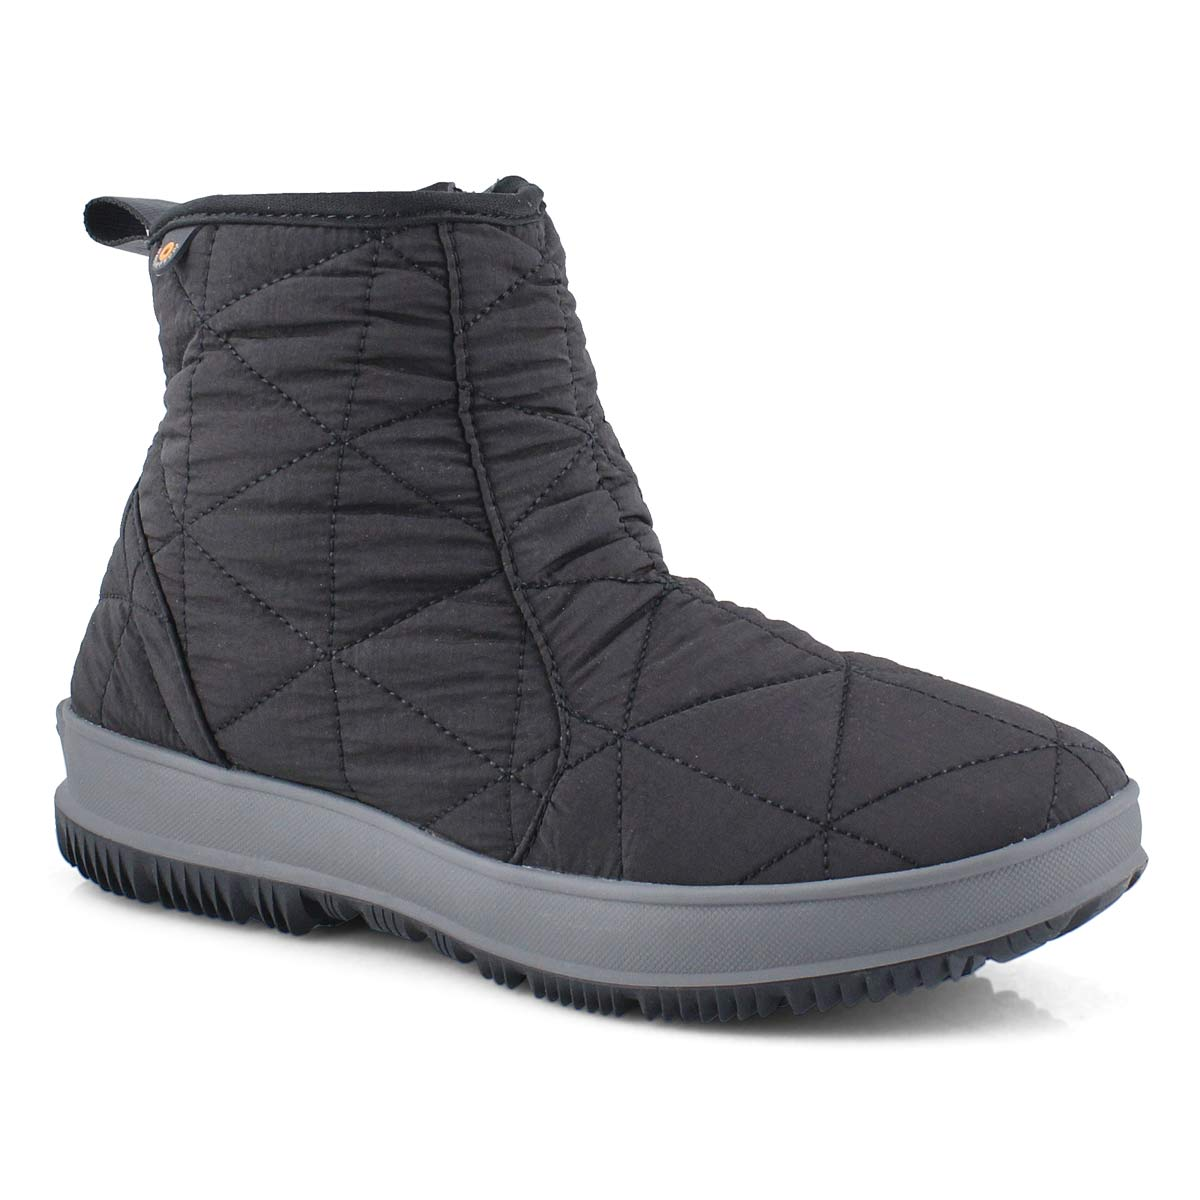 Lds Snowday Low black wtpf boot